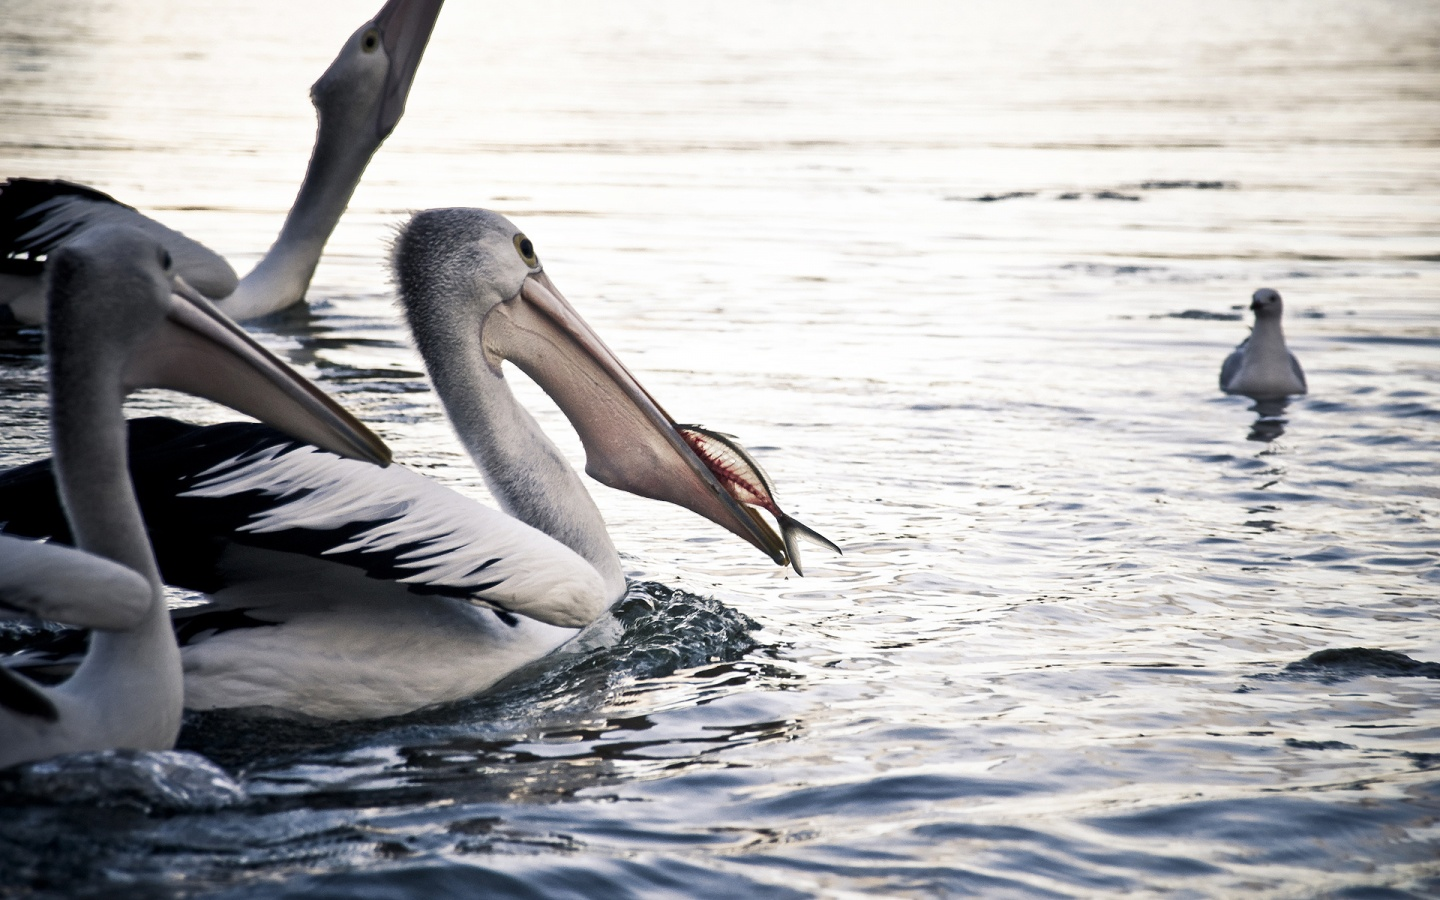 Pelican regales fish